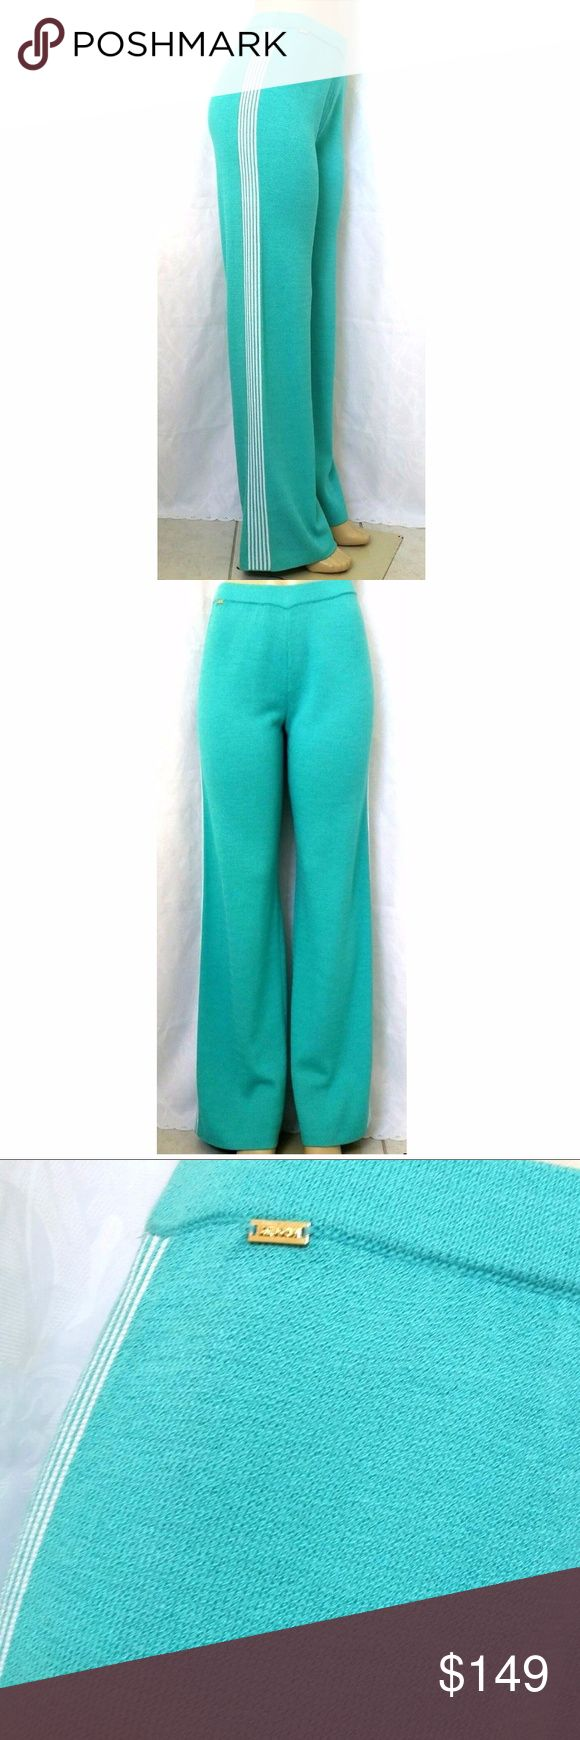 """ST JOHN SPORT Knit Pants Track Aqua White Side St John Sport relaxed leg pants.  - Flat front, 1.5"""" wide elastic waistband - Six white stripes on each side - A gold -tone signature plate at the right side under the waist band - Wide leg - Santana knit - 61% Wool, 39% Rayon - Color on the tag: Opal / Bright White - Size on the tag: P, but please note, that these are extra long pants with an inseam of 34"""" - Waist: 13"""" - Hips: 19"""" - Rise: 10"""" - Leg opening: 11""""  Measurements were made with…"""